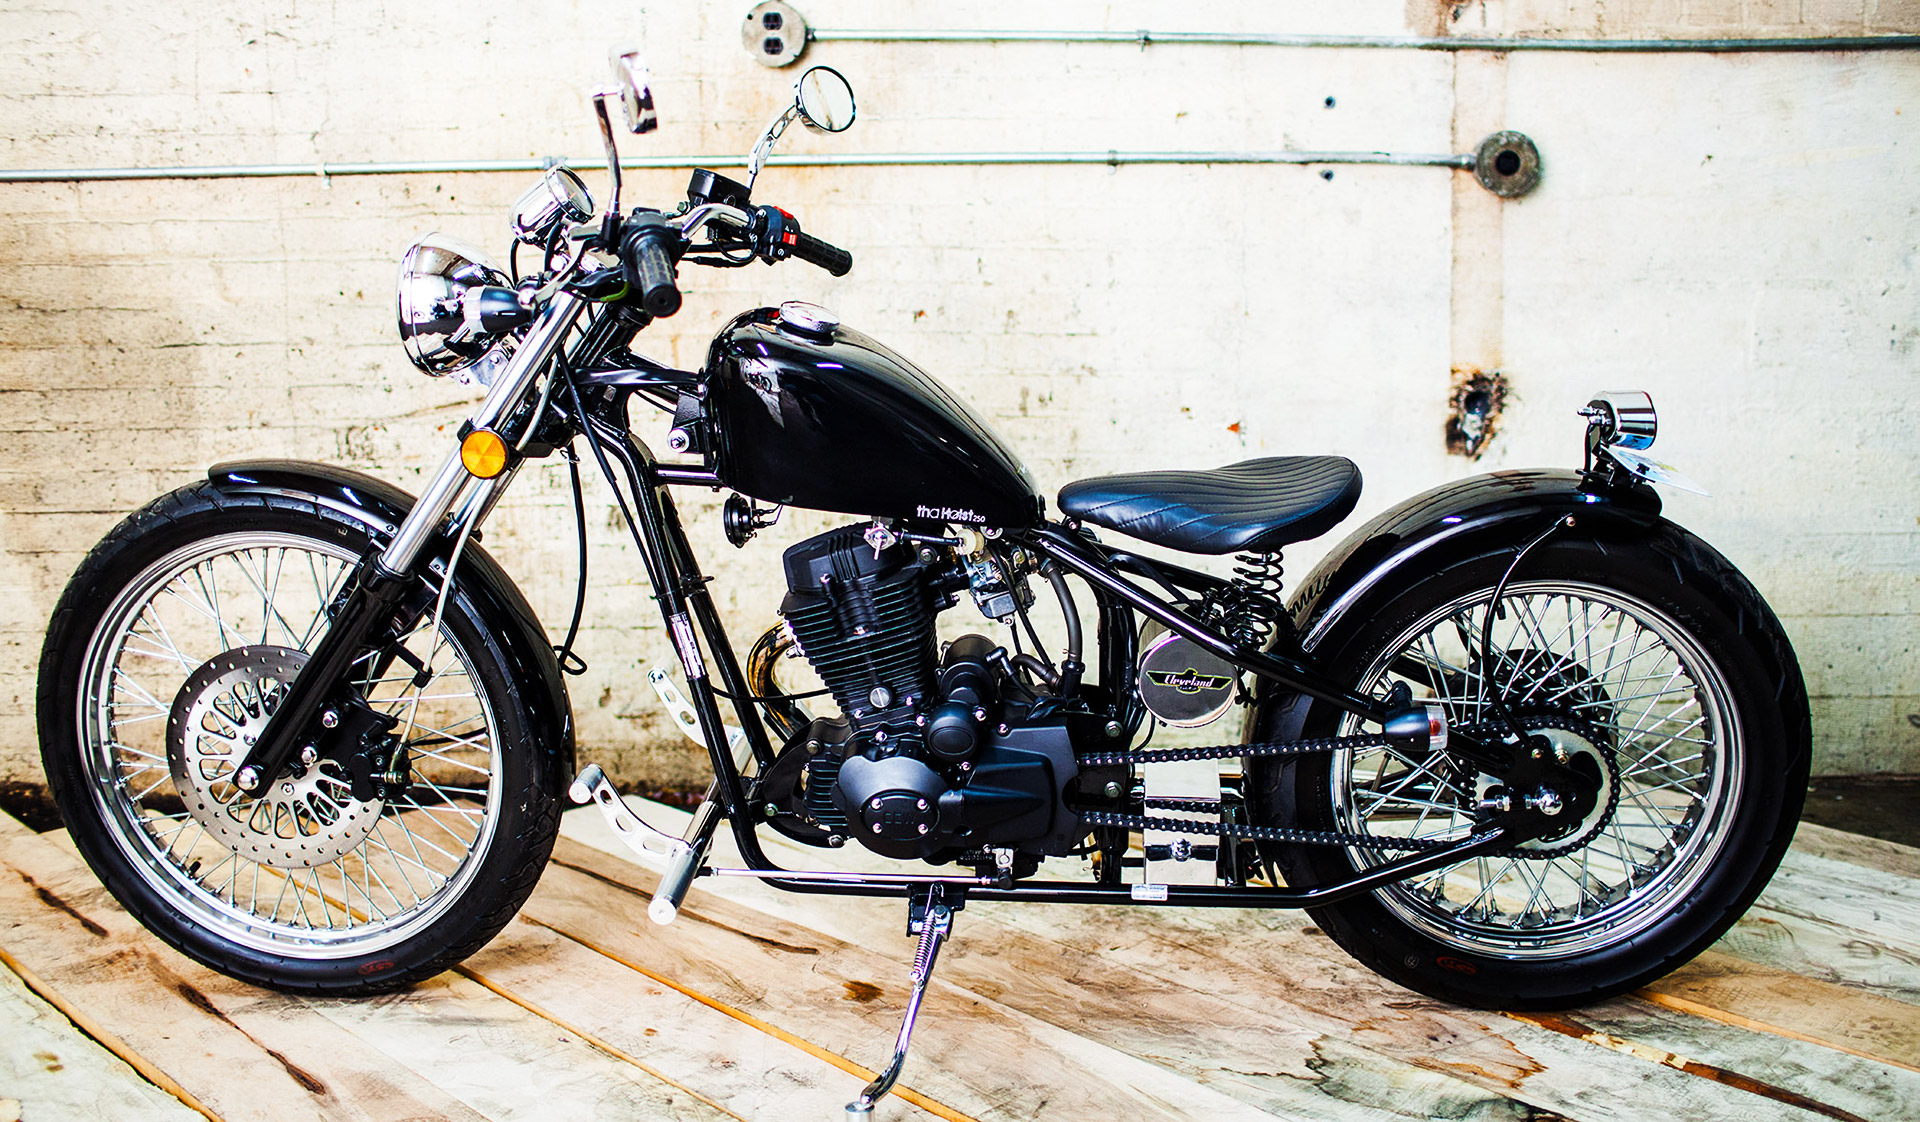 2014 Cleveland CycleWerks Hooligun X: Pics, Specs And